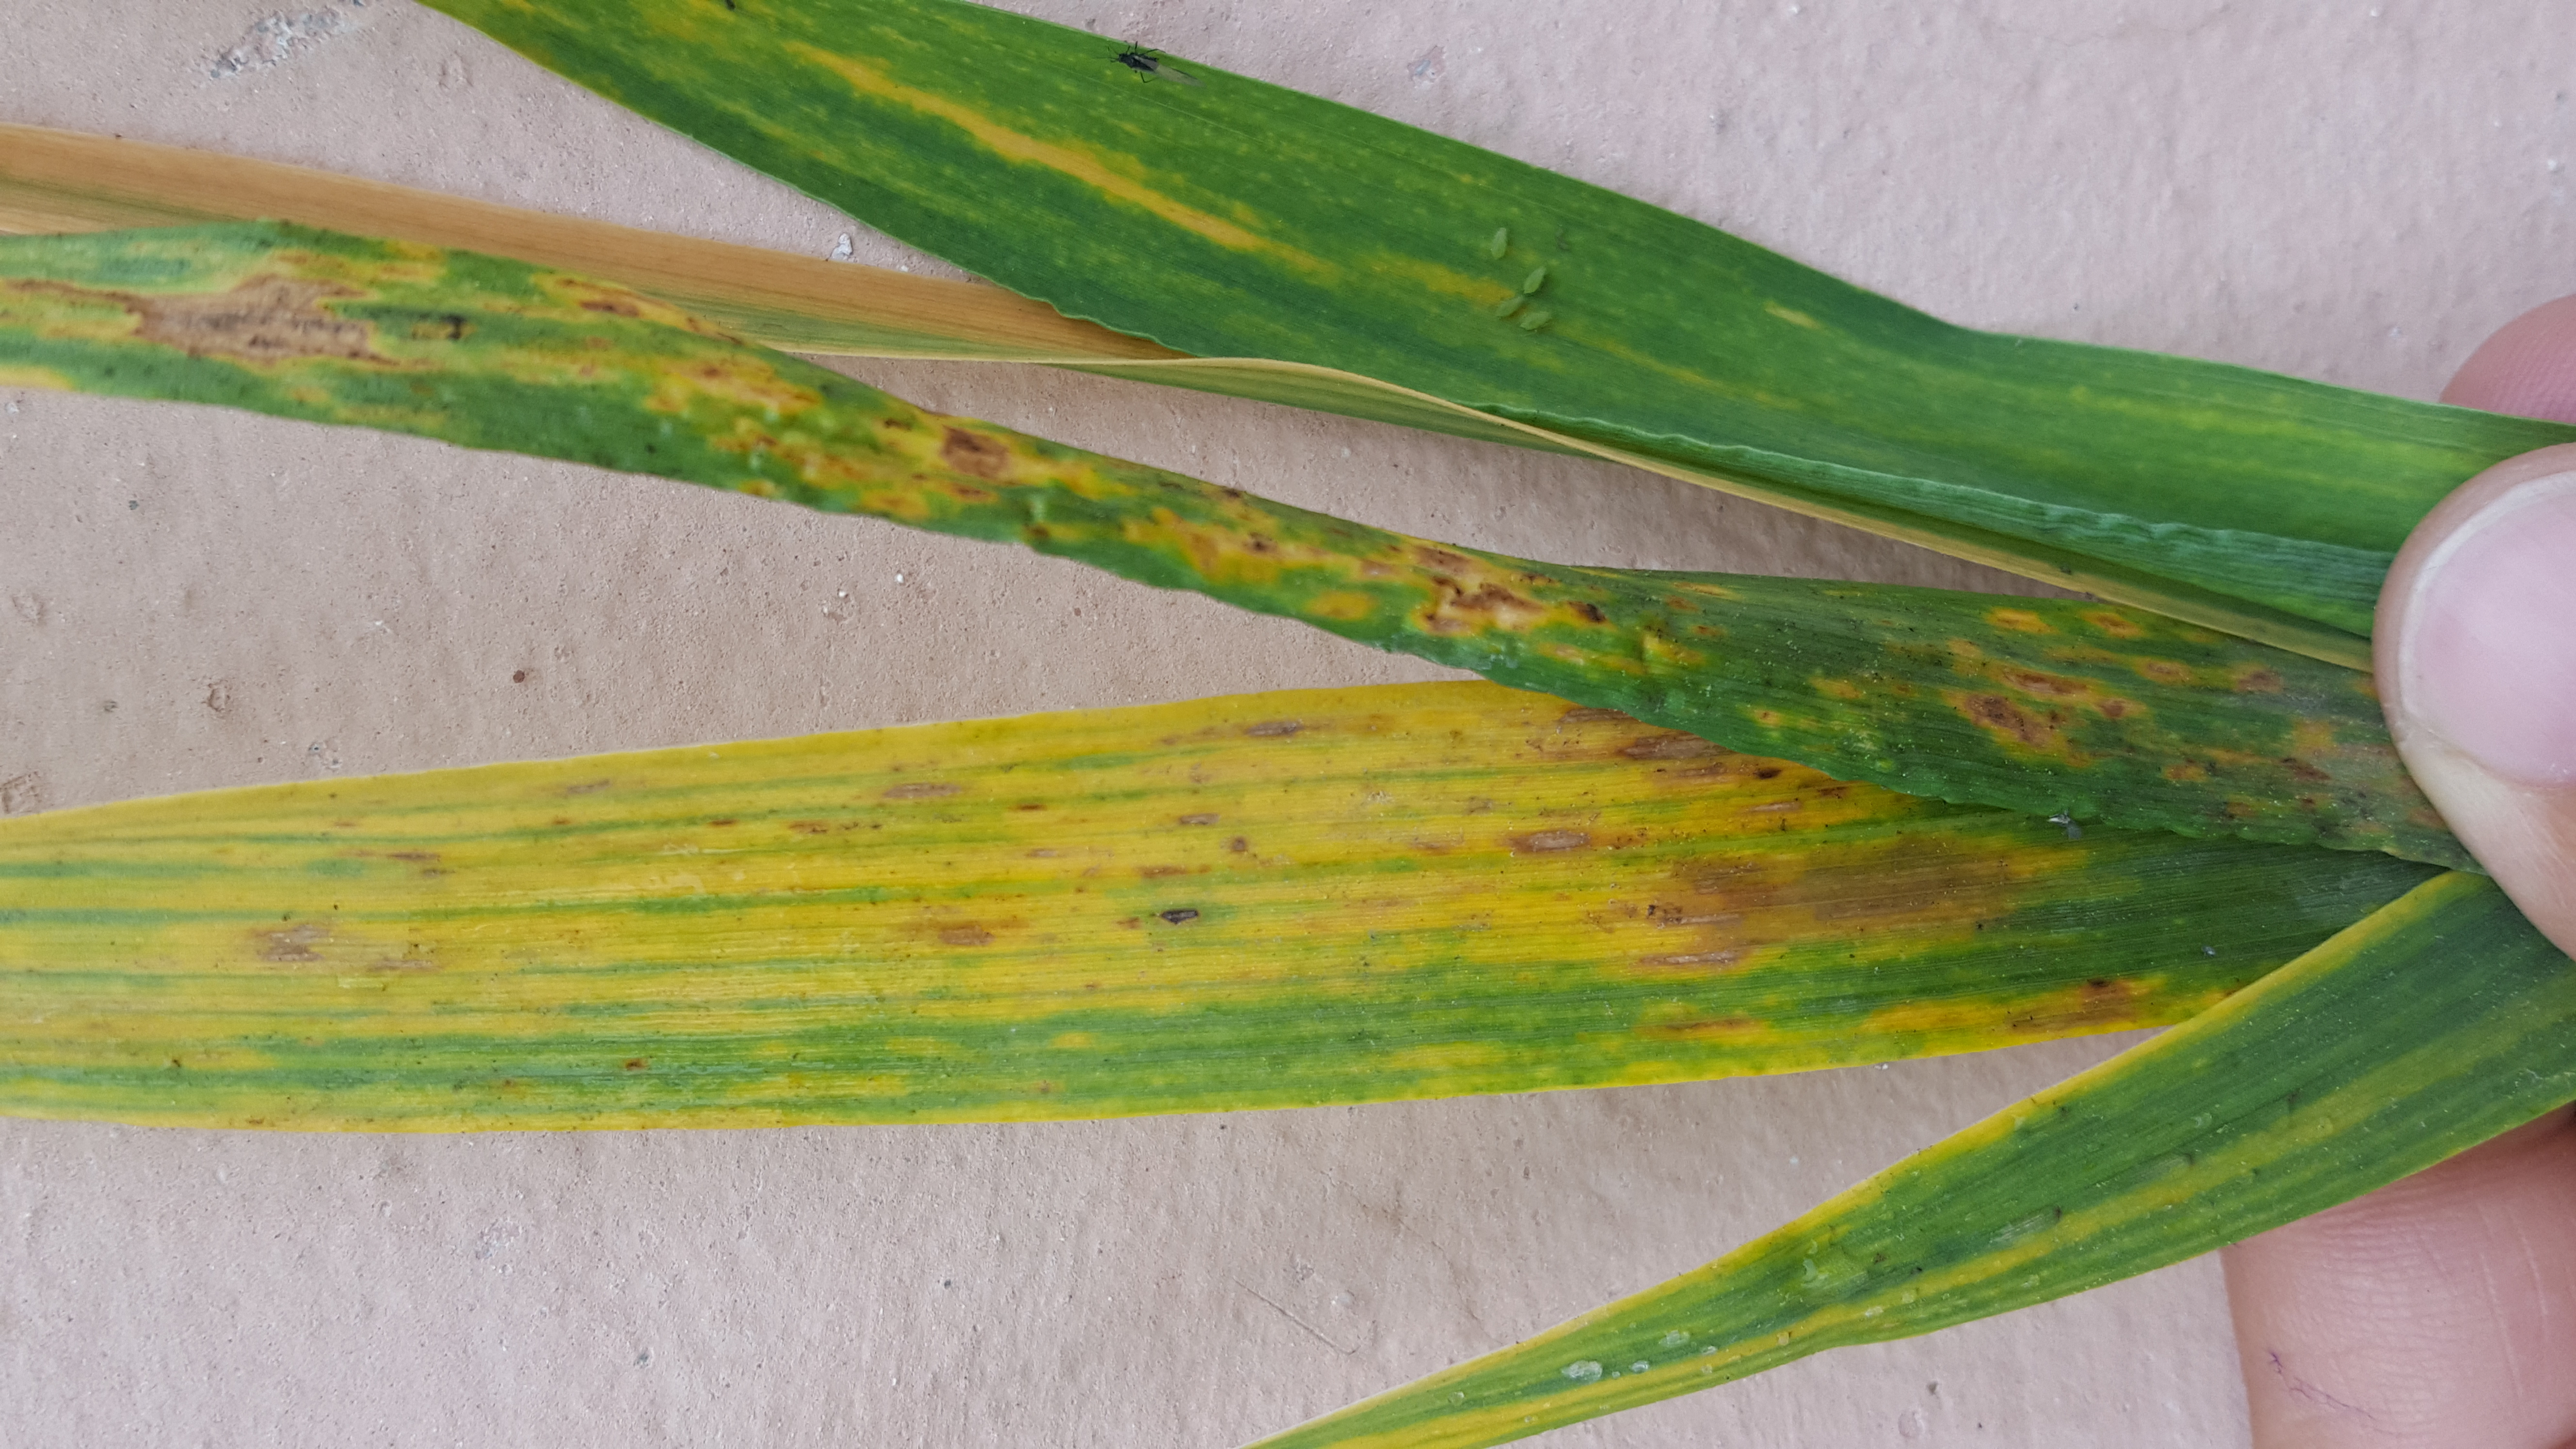 Can someone one help in identification of the disease. Is it spot blotch or leaf blight of wheat.